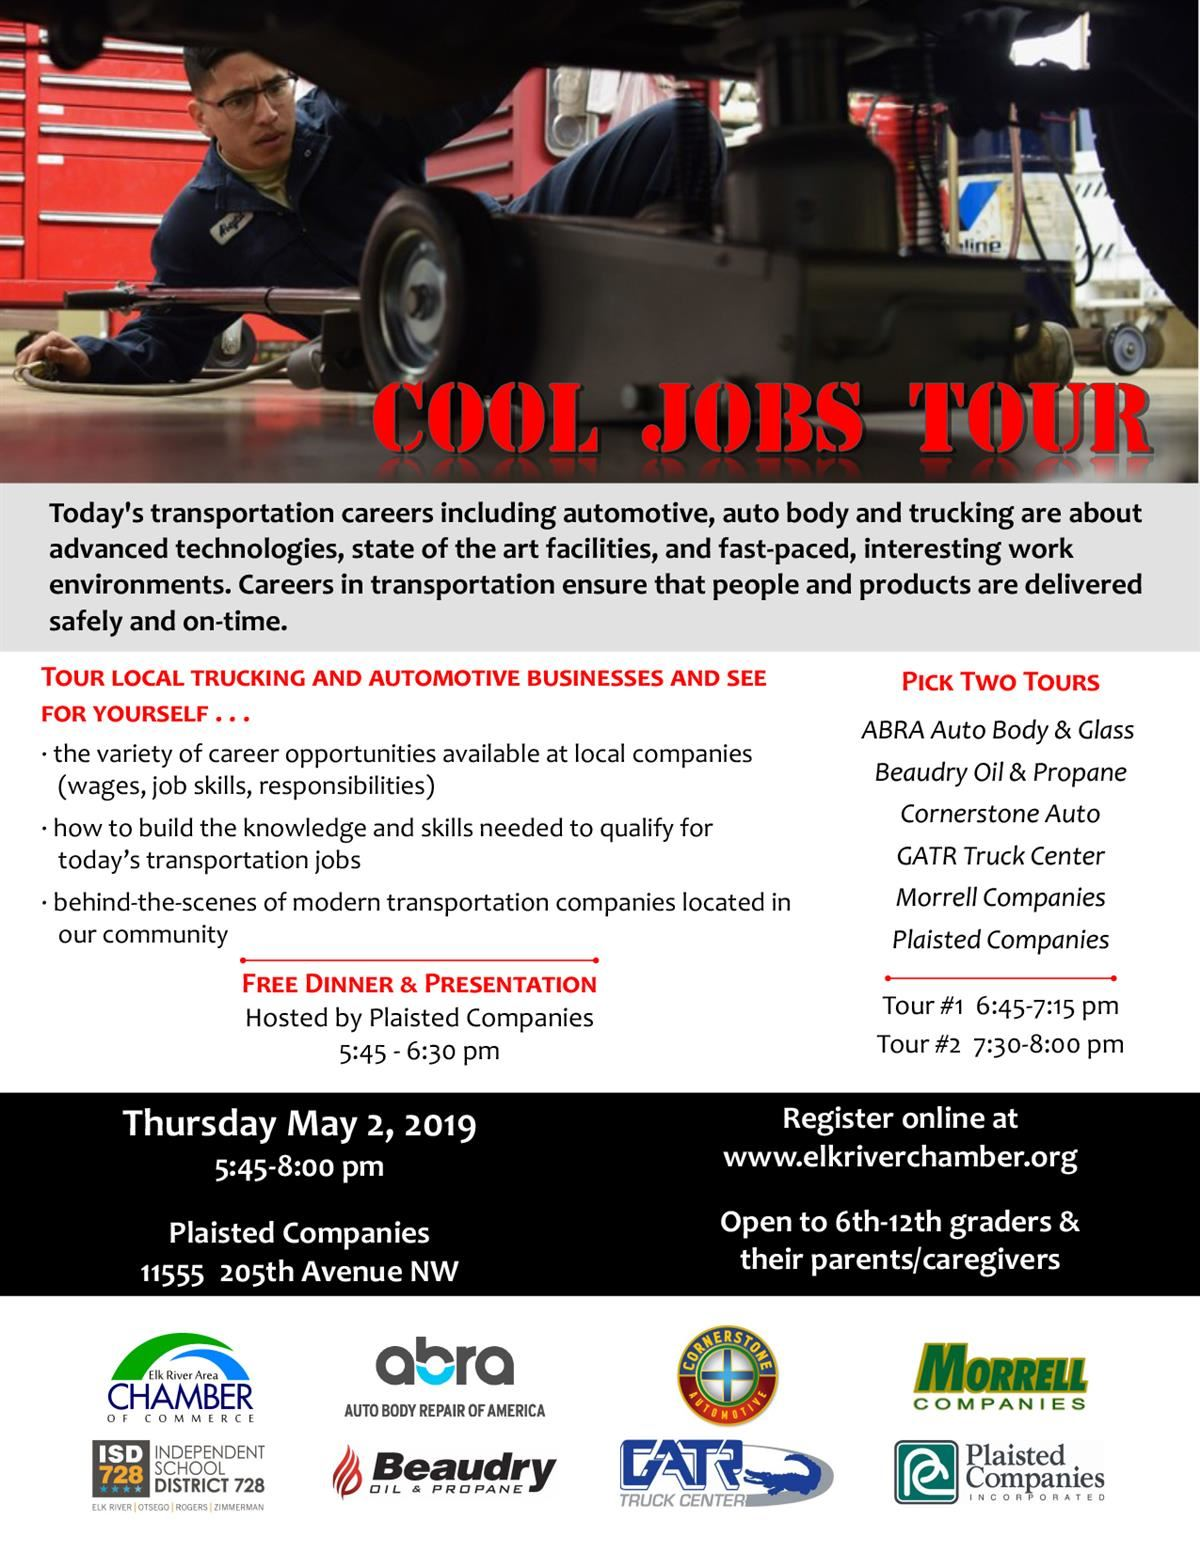 Cool Jobs Tour